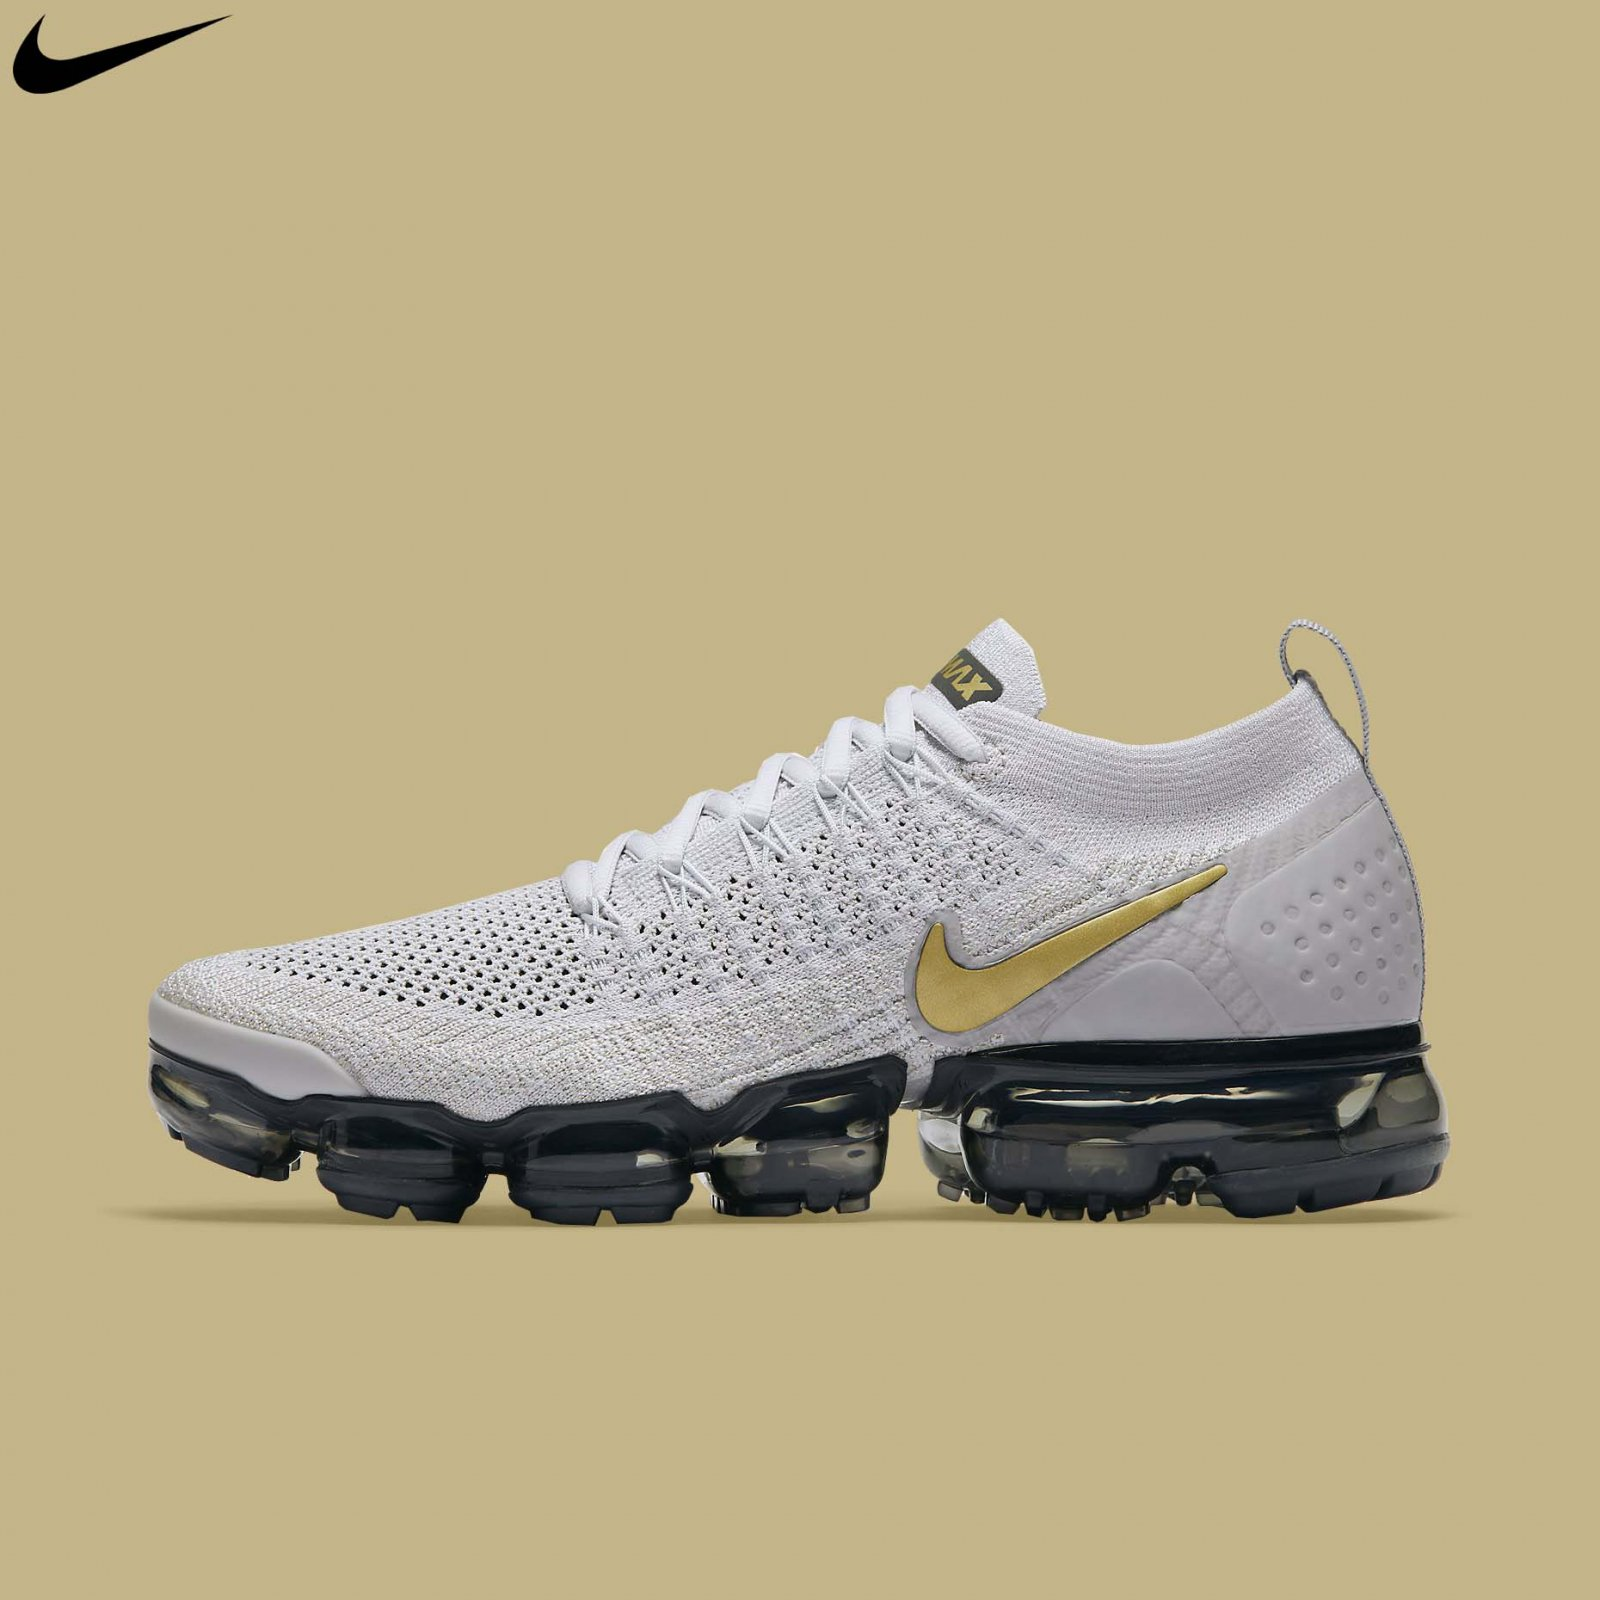 wholesale dealer 2f759 1f8e5 Details about Nike Women's Air Vapormax Flyknit 2 Vast Grey Metallic Gold  Running 942843-010